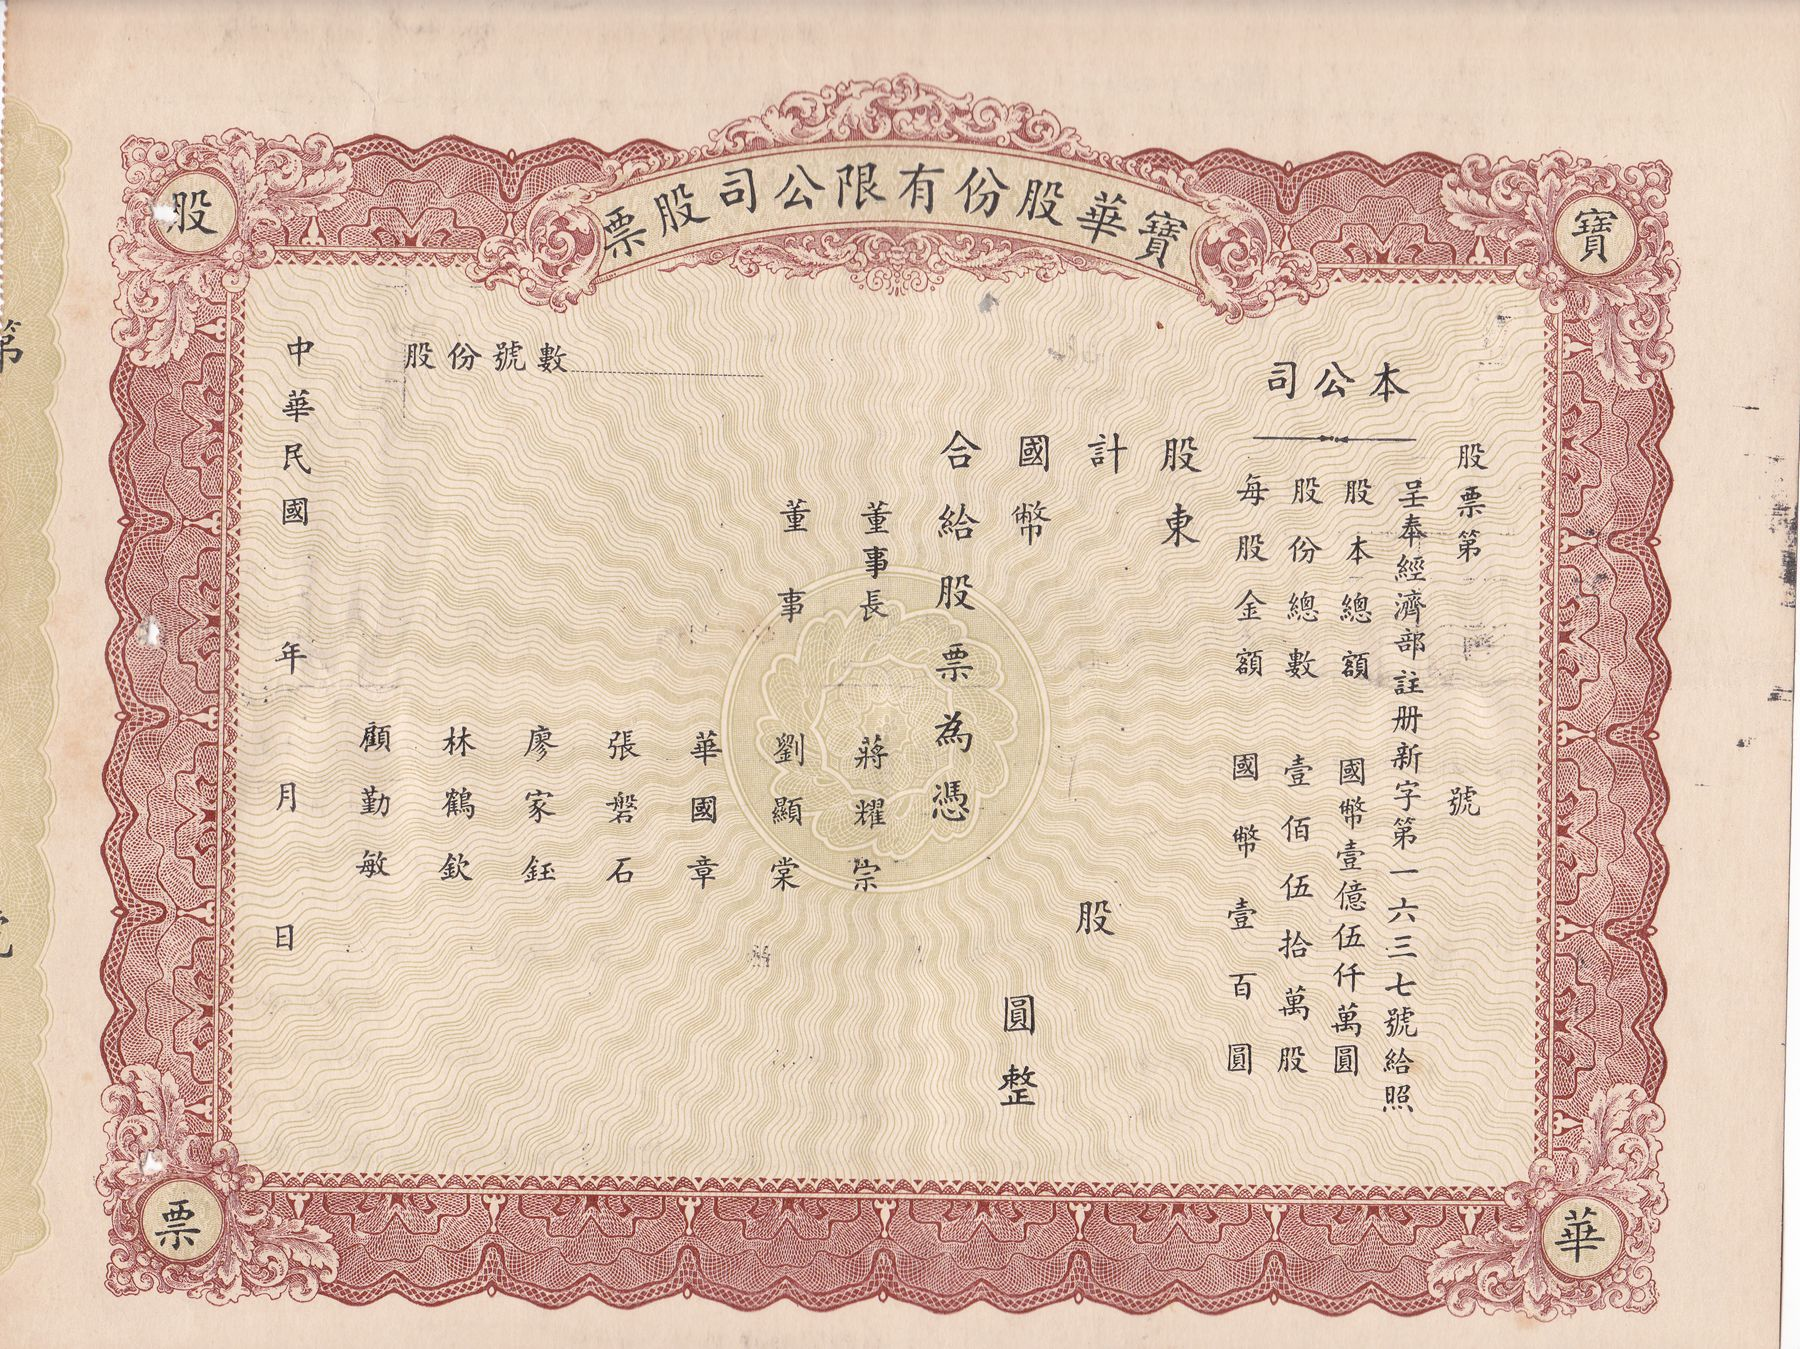 S1437, (Sold Out) Stock Certificate of Precious-China Co.,, Shanghai 1940's unissued